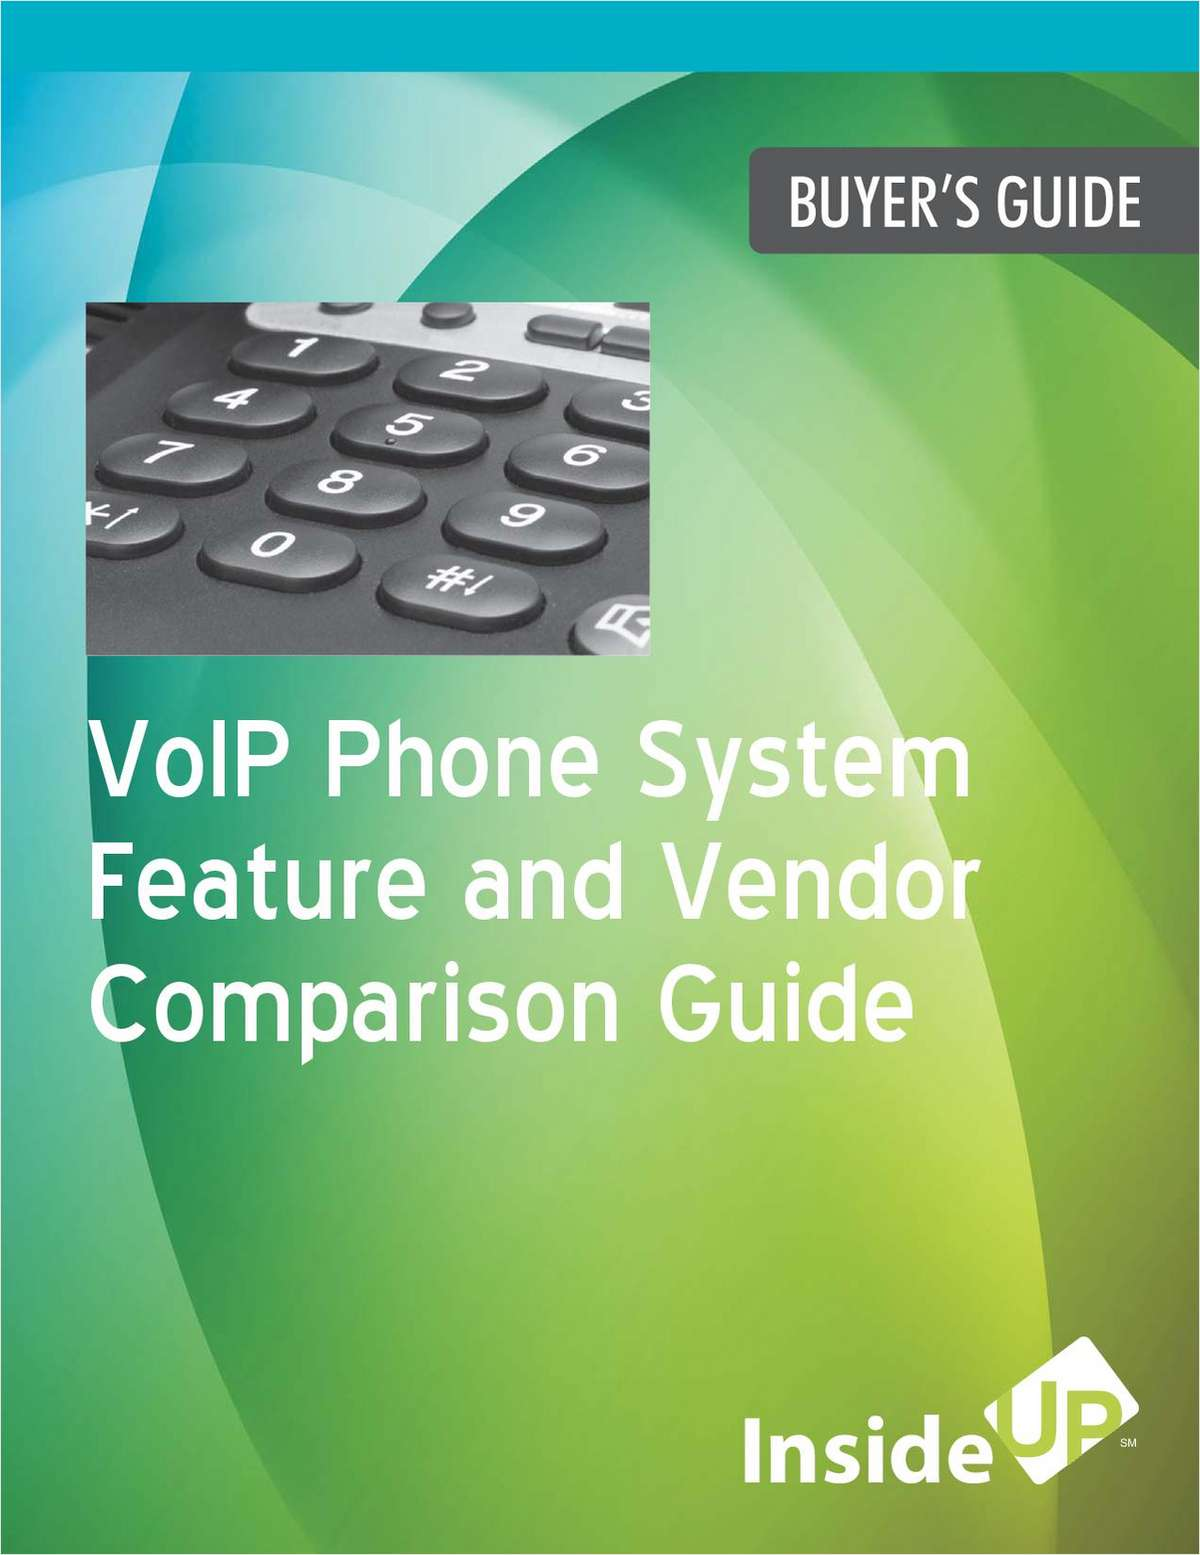 VoIP Phone System Feature and Vendor Comparison Guide